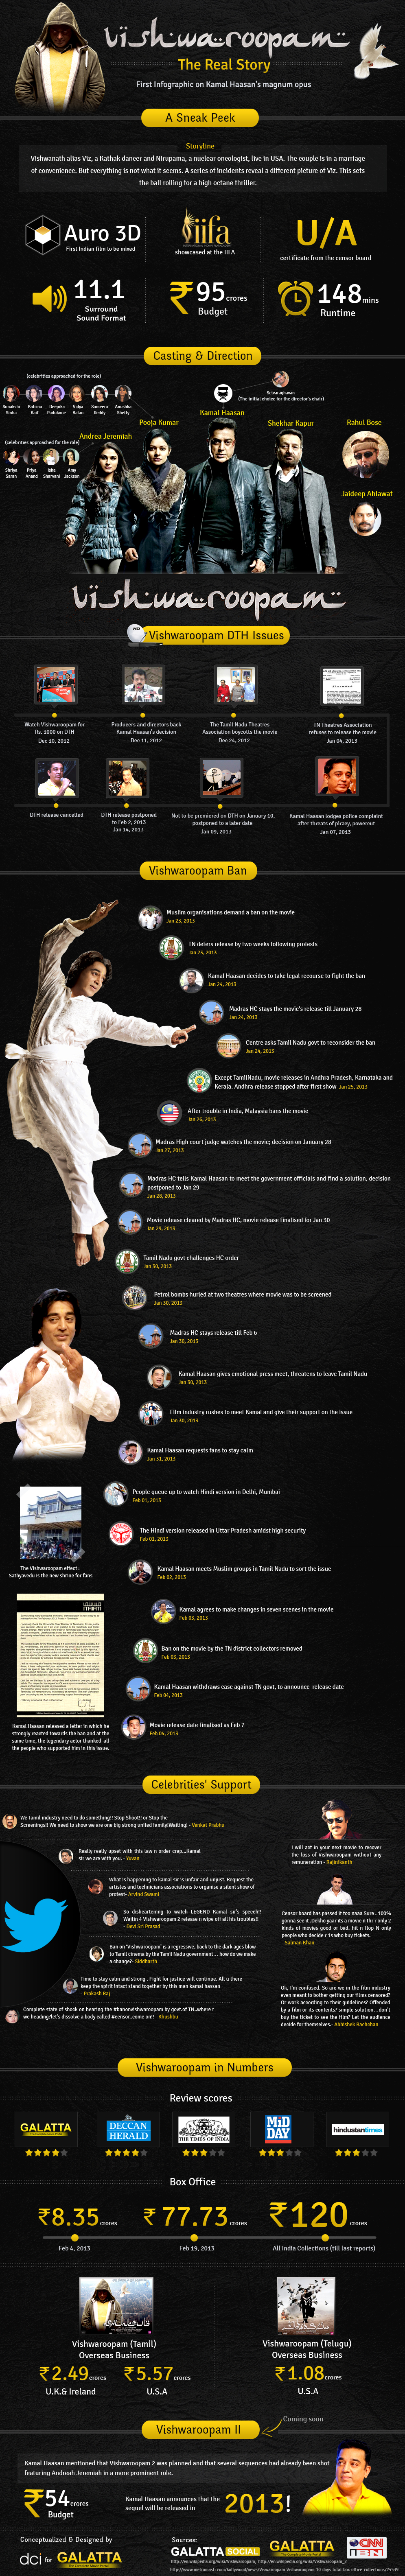 Kamal Haasan's Vishwaroopam - World's First infographic on the movie!